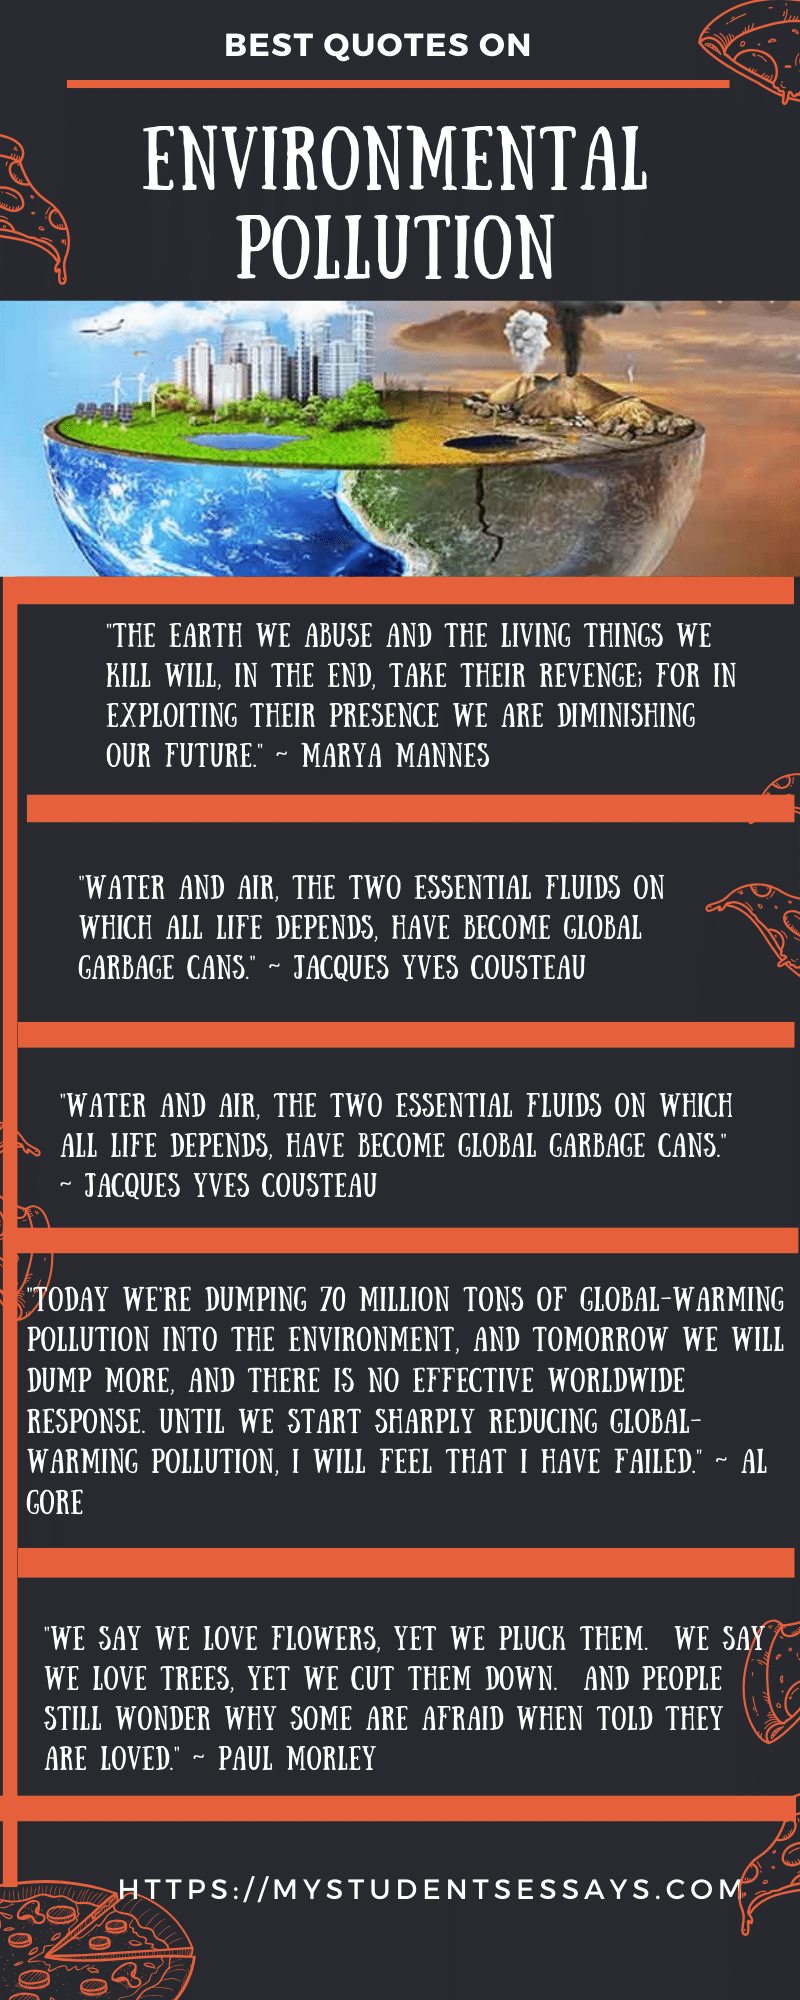 Essay on Environmental Pollution, Causes, Impacts & Solutions